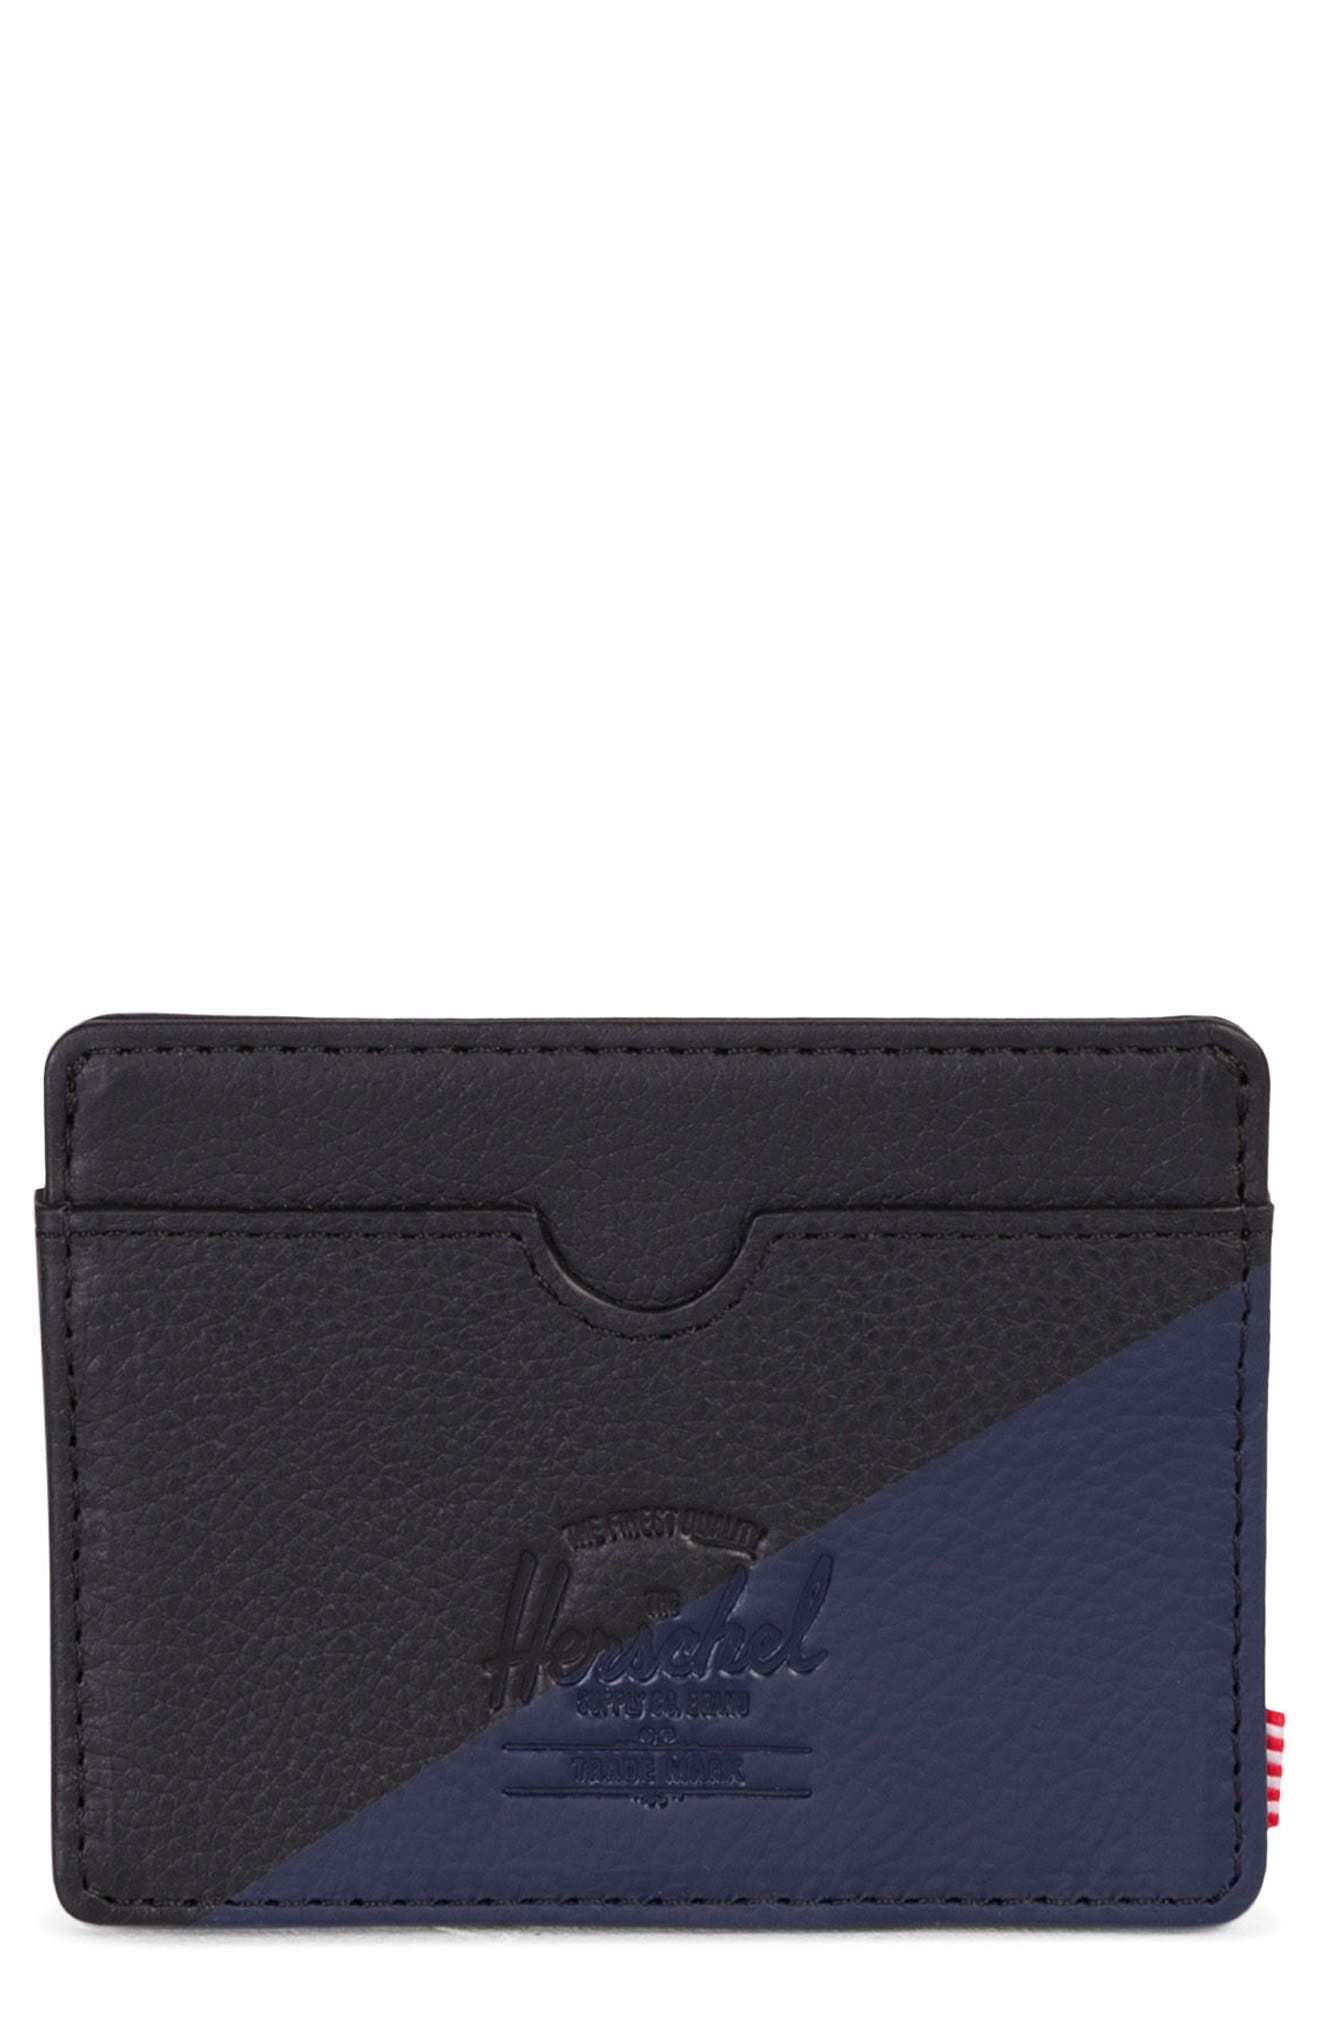 Charlie Leather Card Case,                             Main thumbnail 1, color,